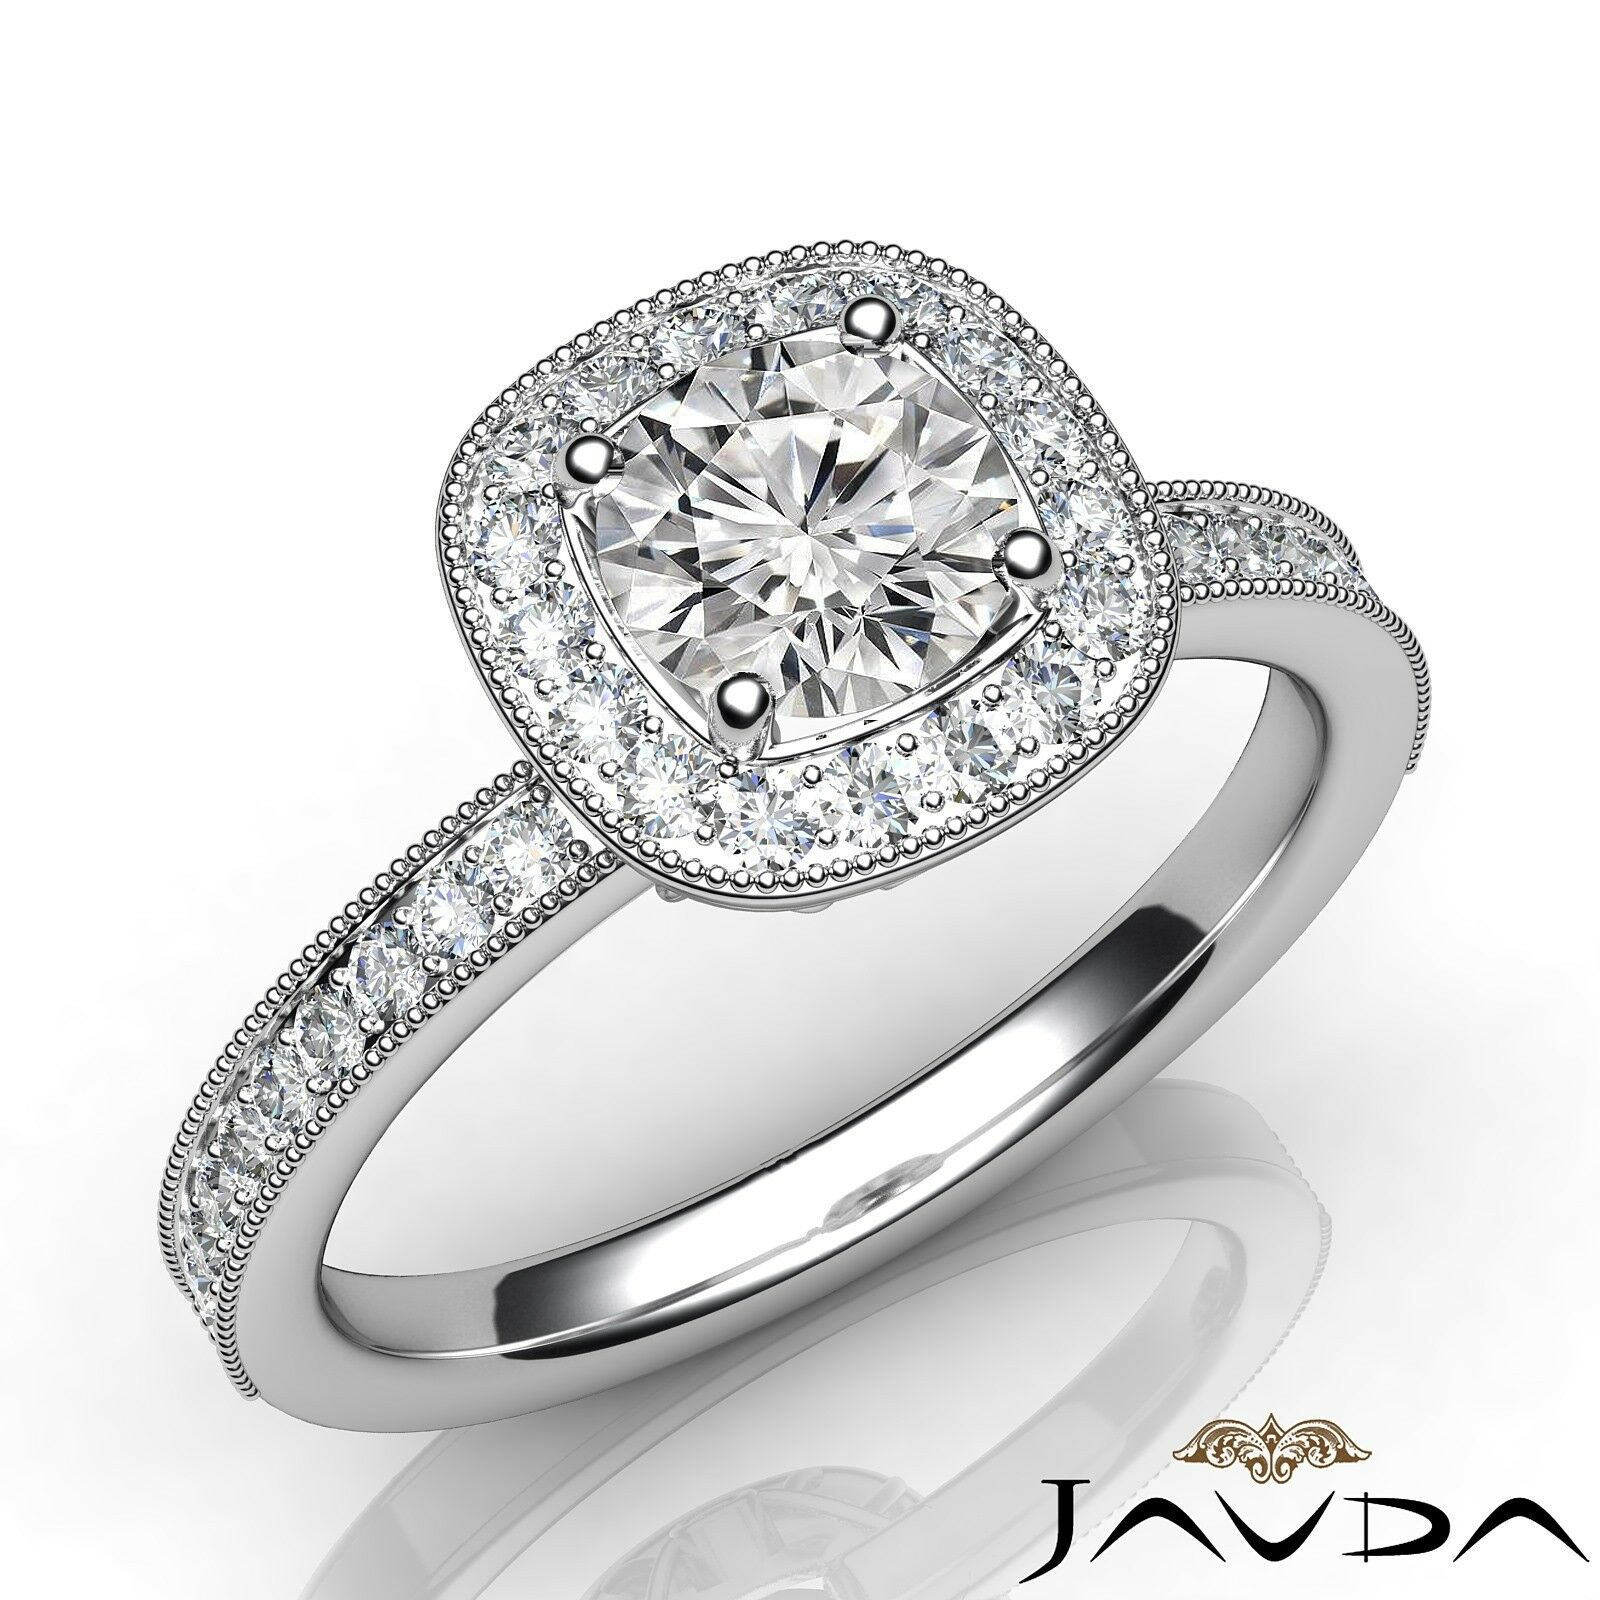 1ctw Brilliant Cut Round Diamond Engagement Ring GIA H-VVS1 White Gold Women New